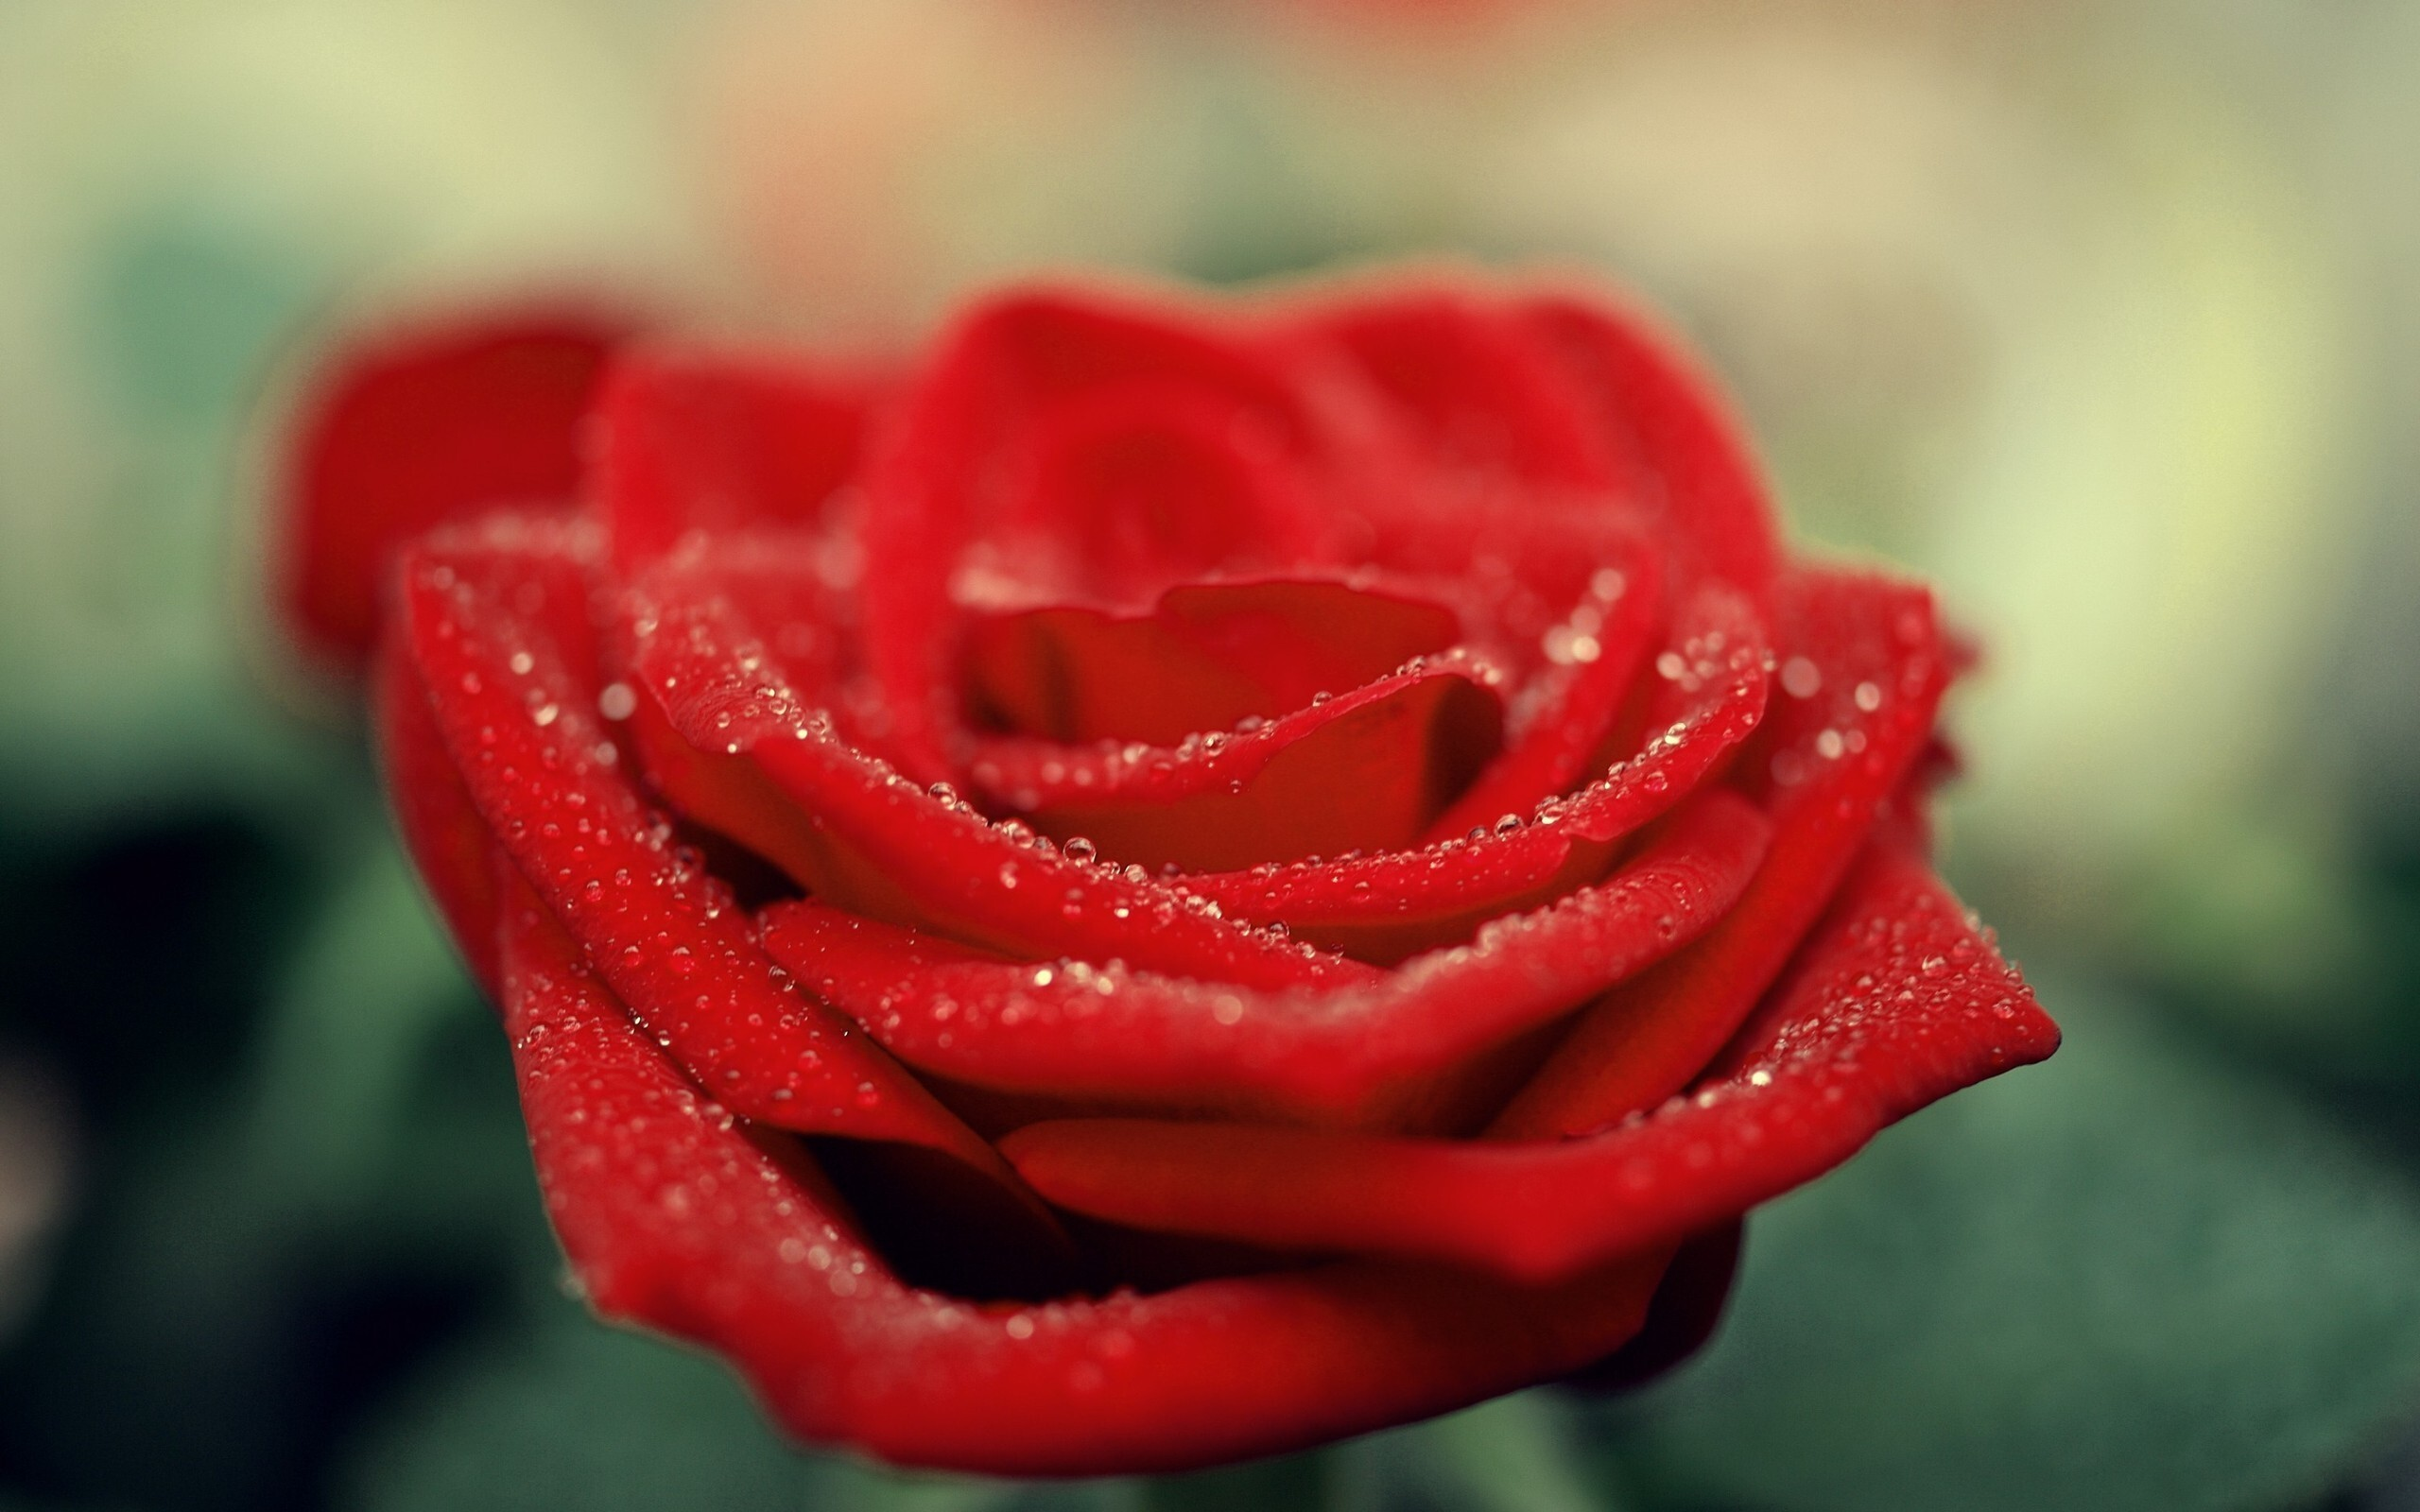 Beautiful red rose flower hd wallpapers hd wallpapers - Red rose flower hd images ...